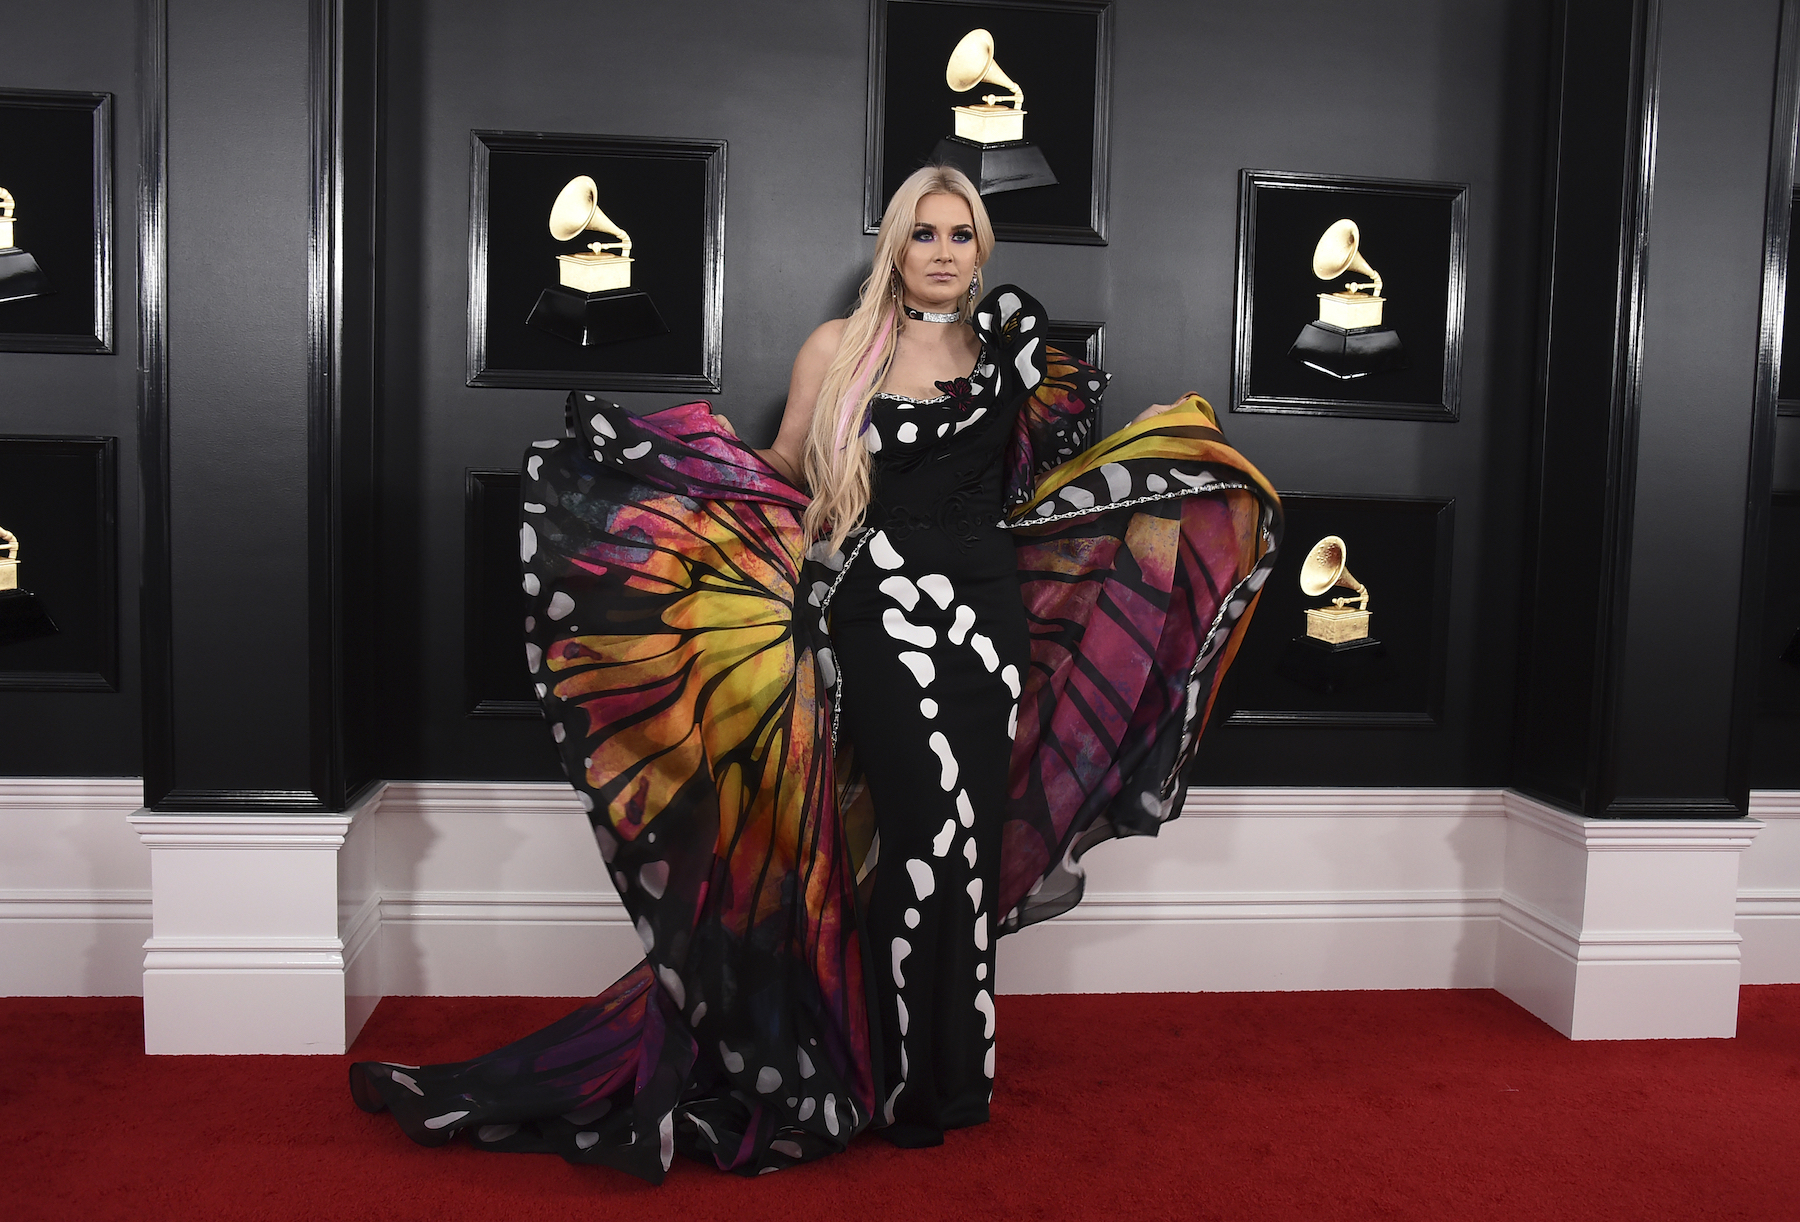 "<div class=""meta image-caption""><div class=""origin-logo origin-image ap""><span>AP</span></div><span class=""caption-text"">Saint Heart arrives at the 61st annual Grammy Awards at the Staples Center on Sunday, Feb. 10, 2019, in Los Angeles. (Jordan Strauss/Invision/AP)</span></div>"